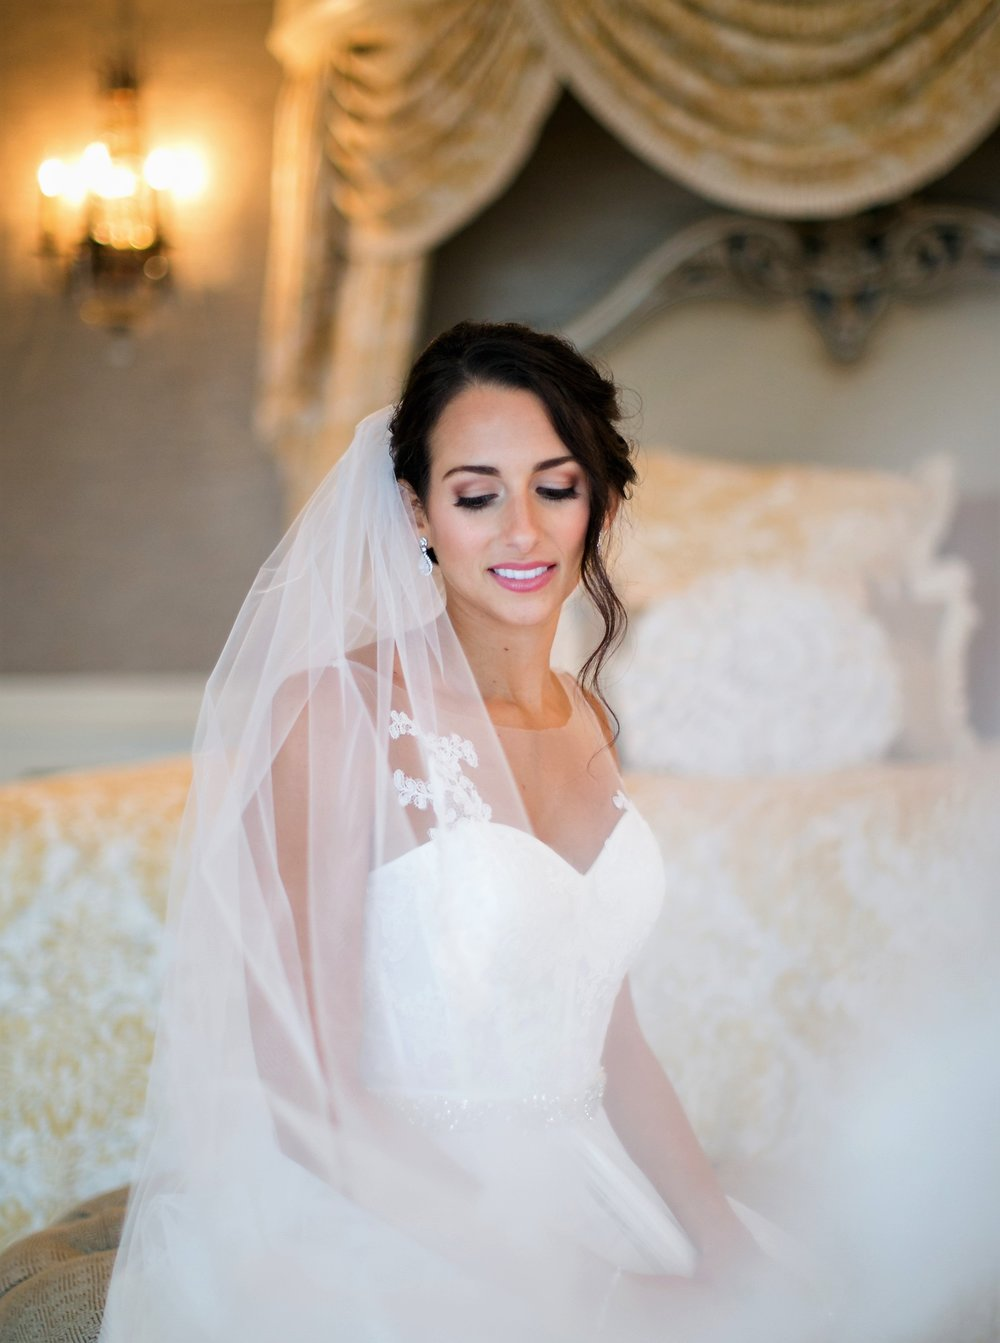 BECOME A BEACH HOUSE BRIDE…. - Owner and lead artist Lauren Cirulli has been in the wedding industry for over 15 years. Her work has been published in Red Oak Weddings, Green Wedding Shoes, The Knot, and more - including the cover of New Jersey Brides. Her love of makeup started at a young age and has grown into a successful business. She now employees a team of talented stylists and artists who share the same passion.Every bride is unique, that's why the team at Beach House Spa takes the time to find the perfect style to compliment every bride's vision of her big day. Whether it be classic and timeless, soft and romantic, or bold and trendsetting, you can count on Beach House Spa to perfect your bridal look.